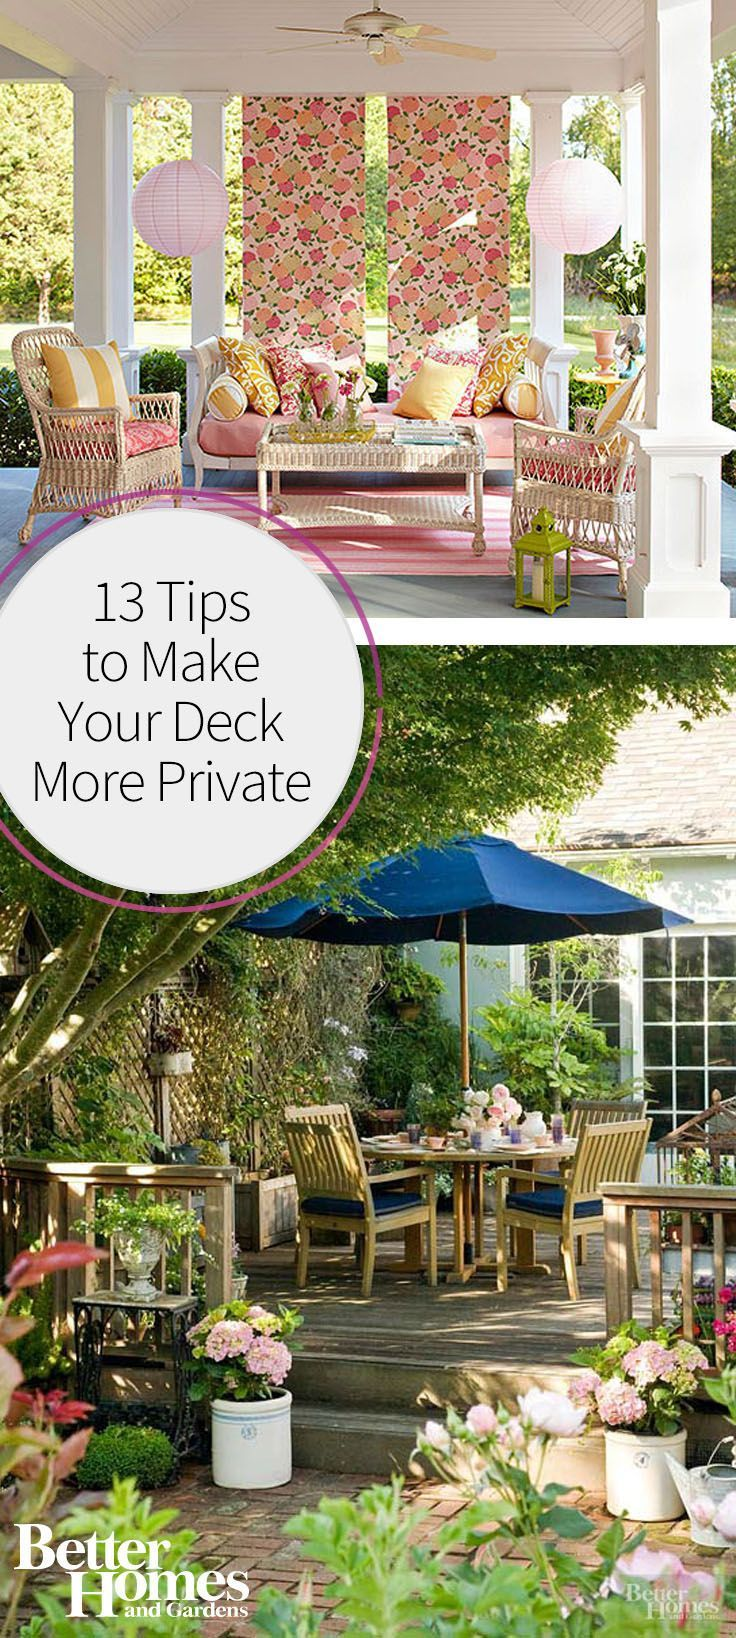 How To Make Backyard More Private 13 tips to make your deck more private | bhg's best garden ideas